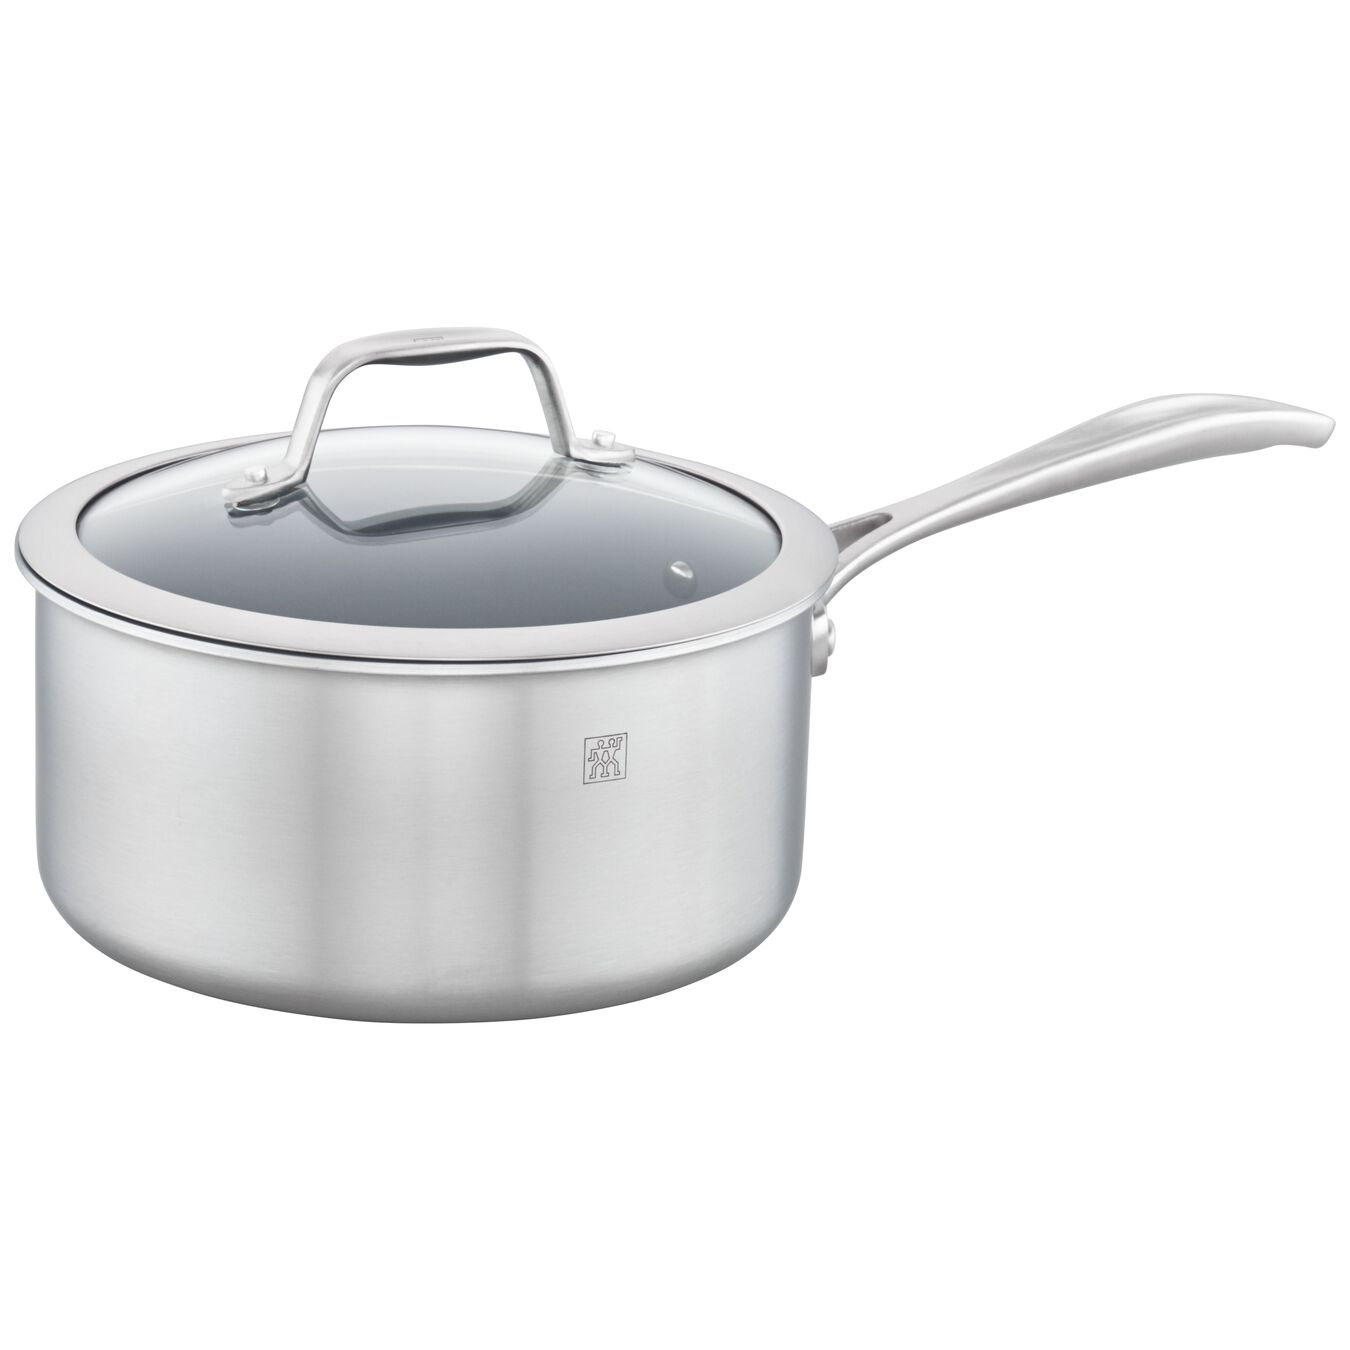 3-ply 3-qt Stainless Steel Ceramic Nonstick Saucepan,,large 1